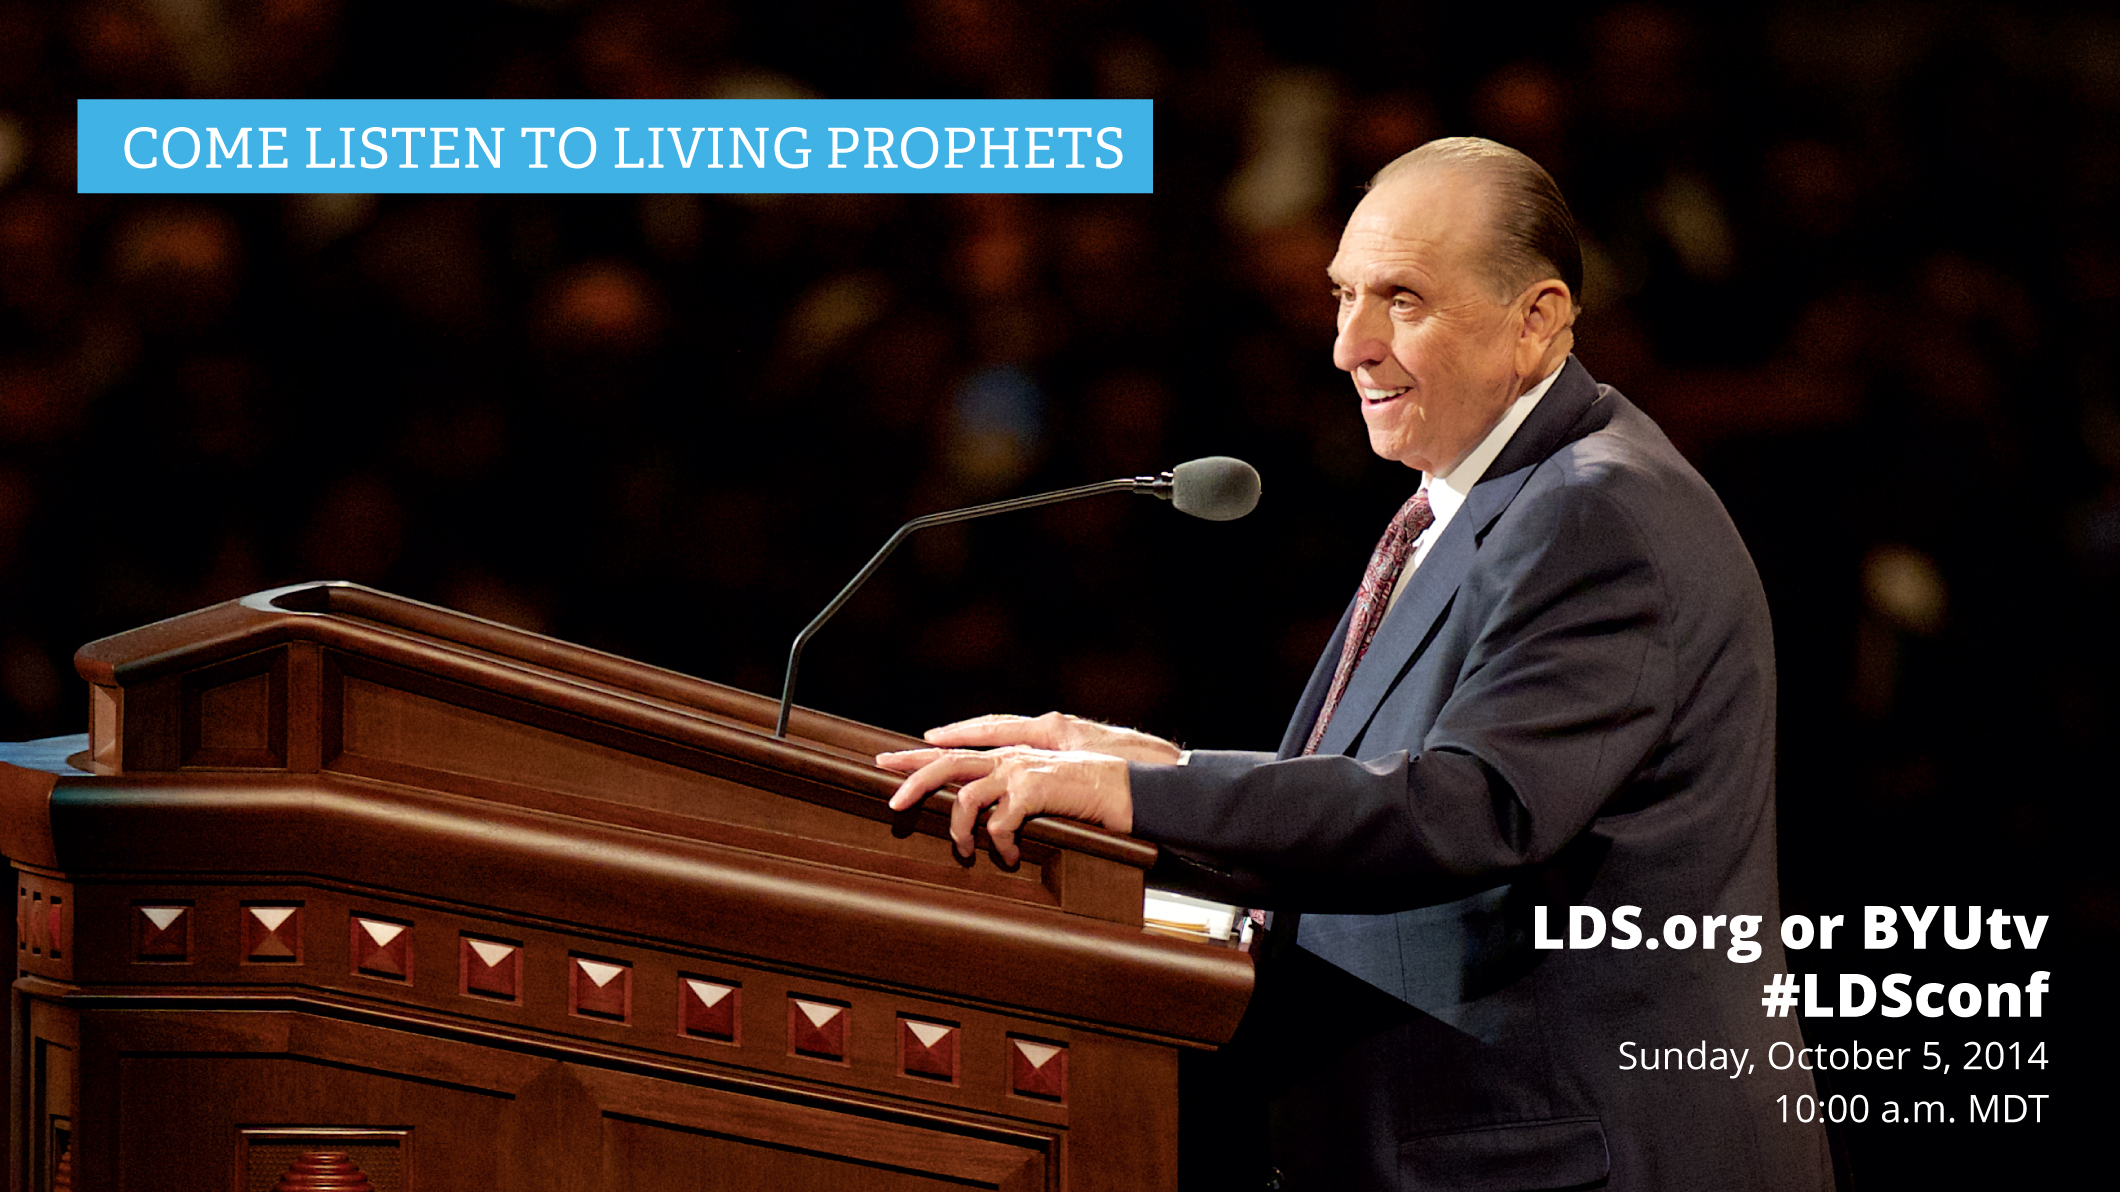 https://www.lds.org/bc/content/shared/english/conference/google+gc-large.jpg?lang=eng